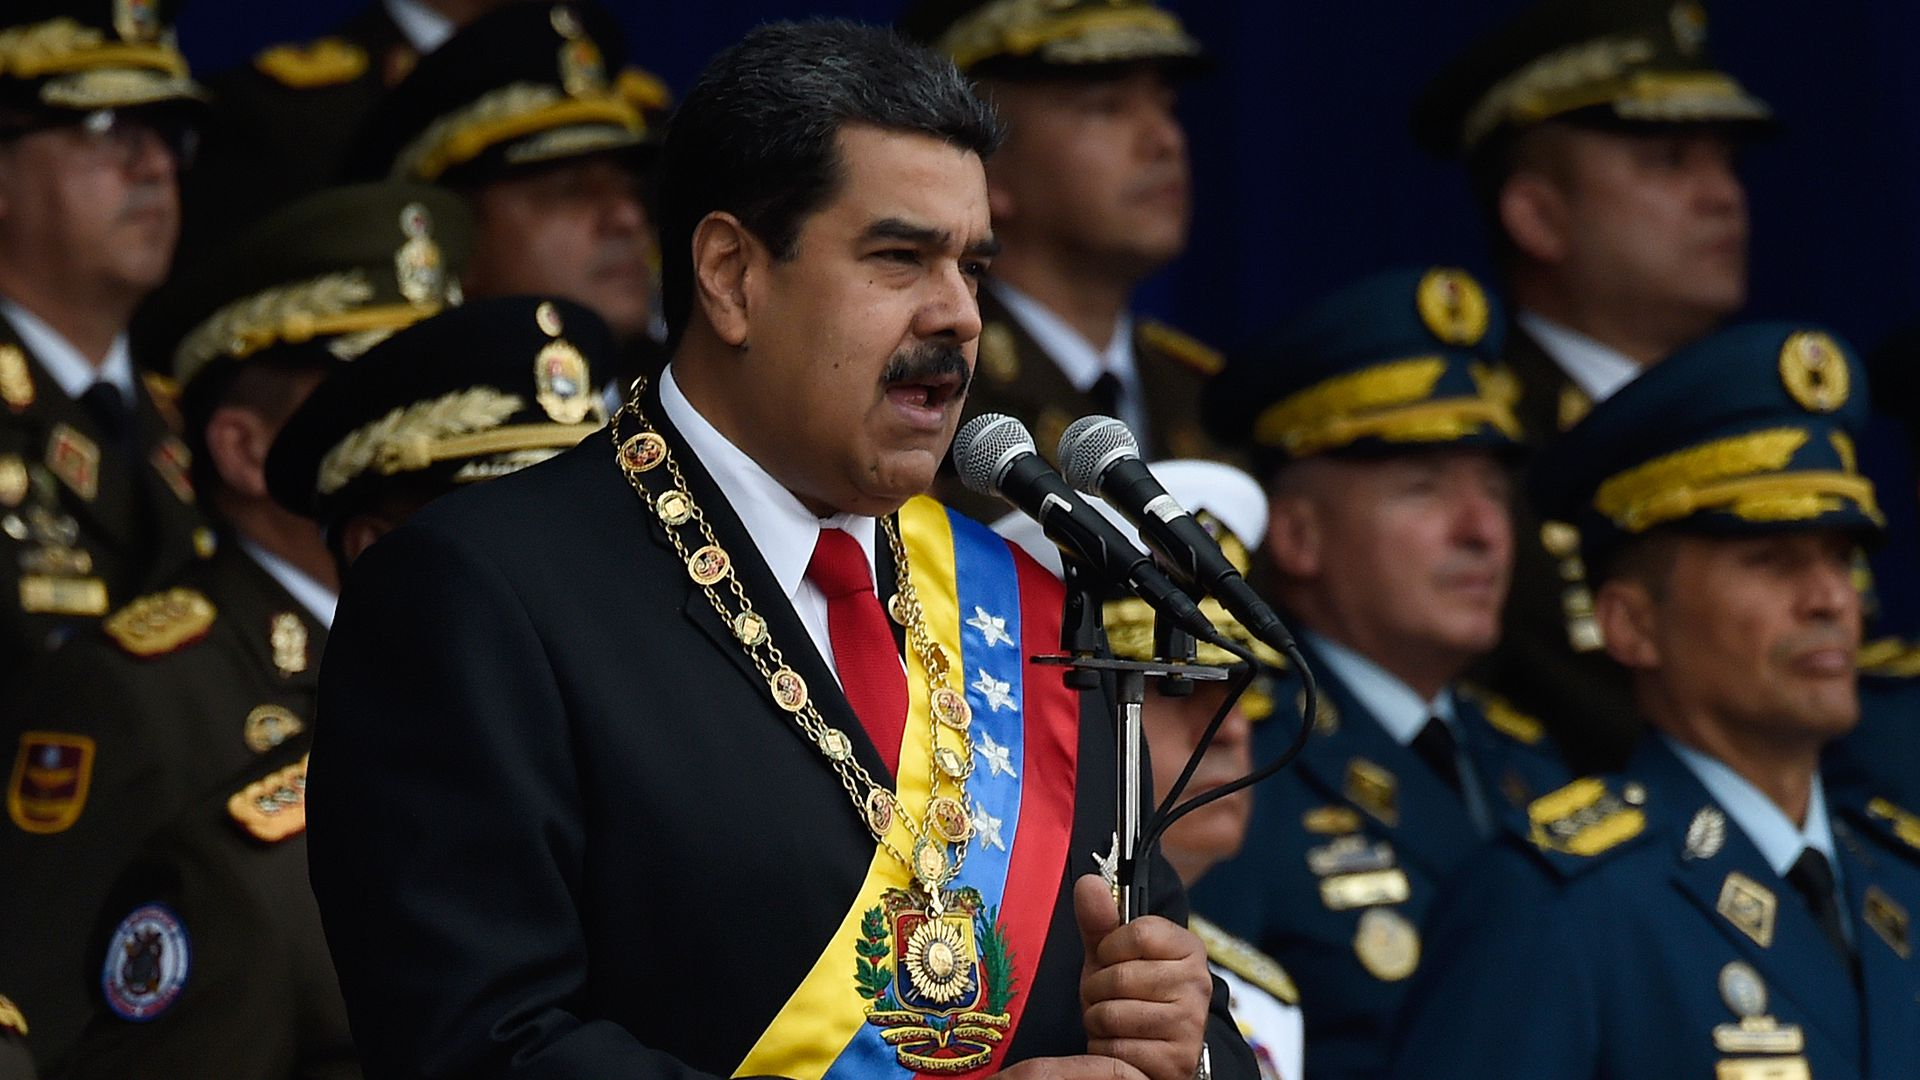 Venezuelan President Nicolas Maduro delivers a speech during a ceremony to celebrate the 81st anniversary of the National Guard in Caracas on August 4, 2018.